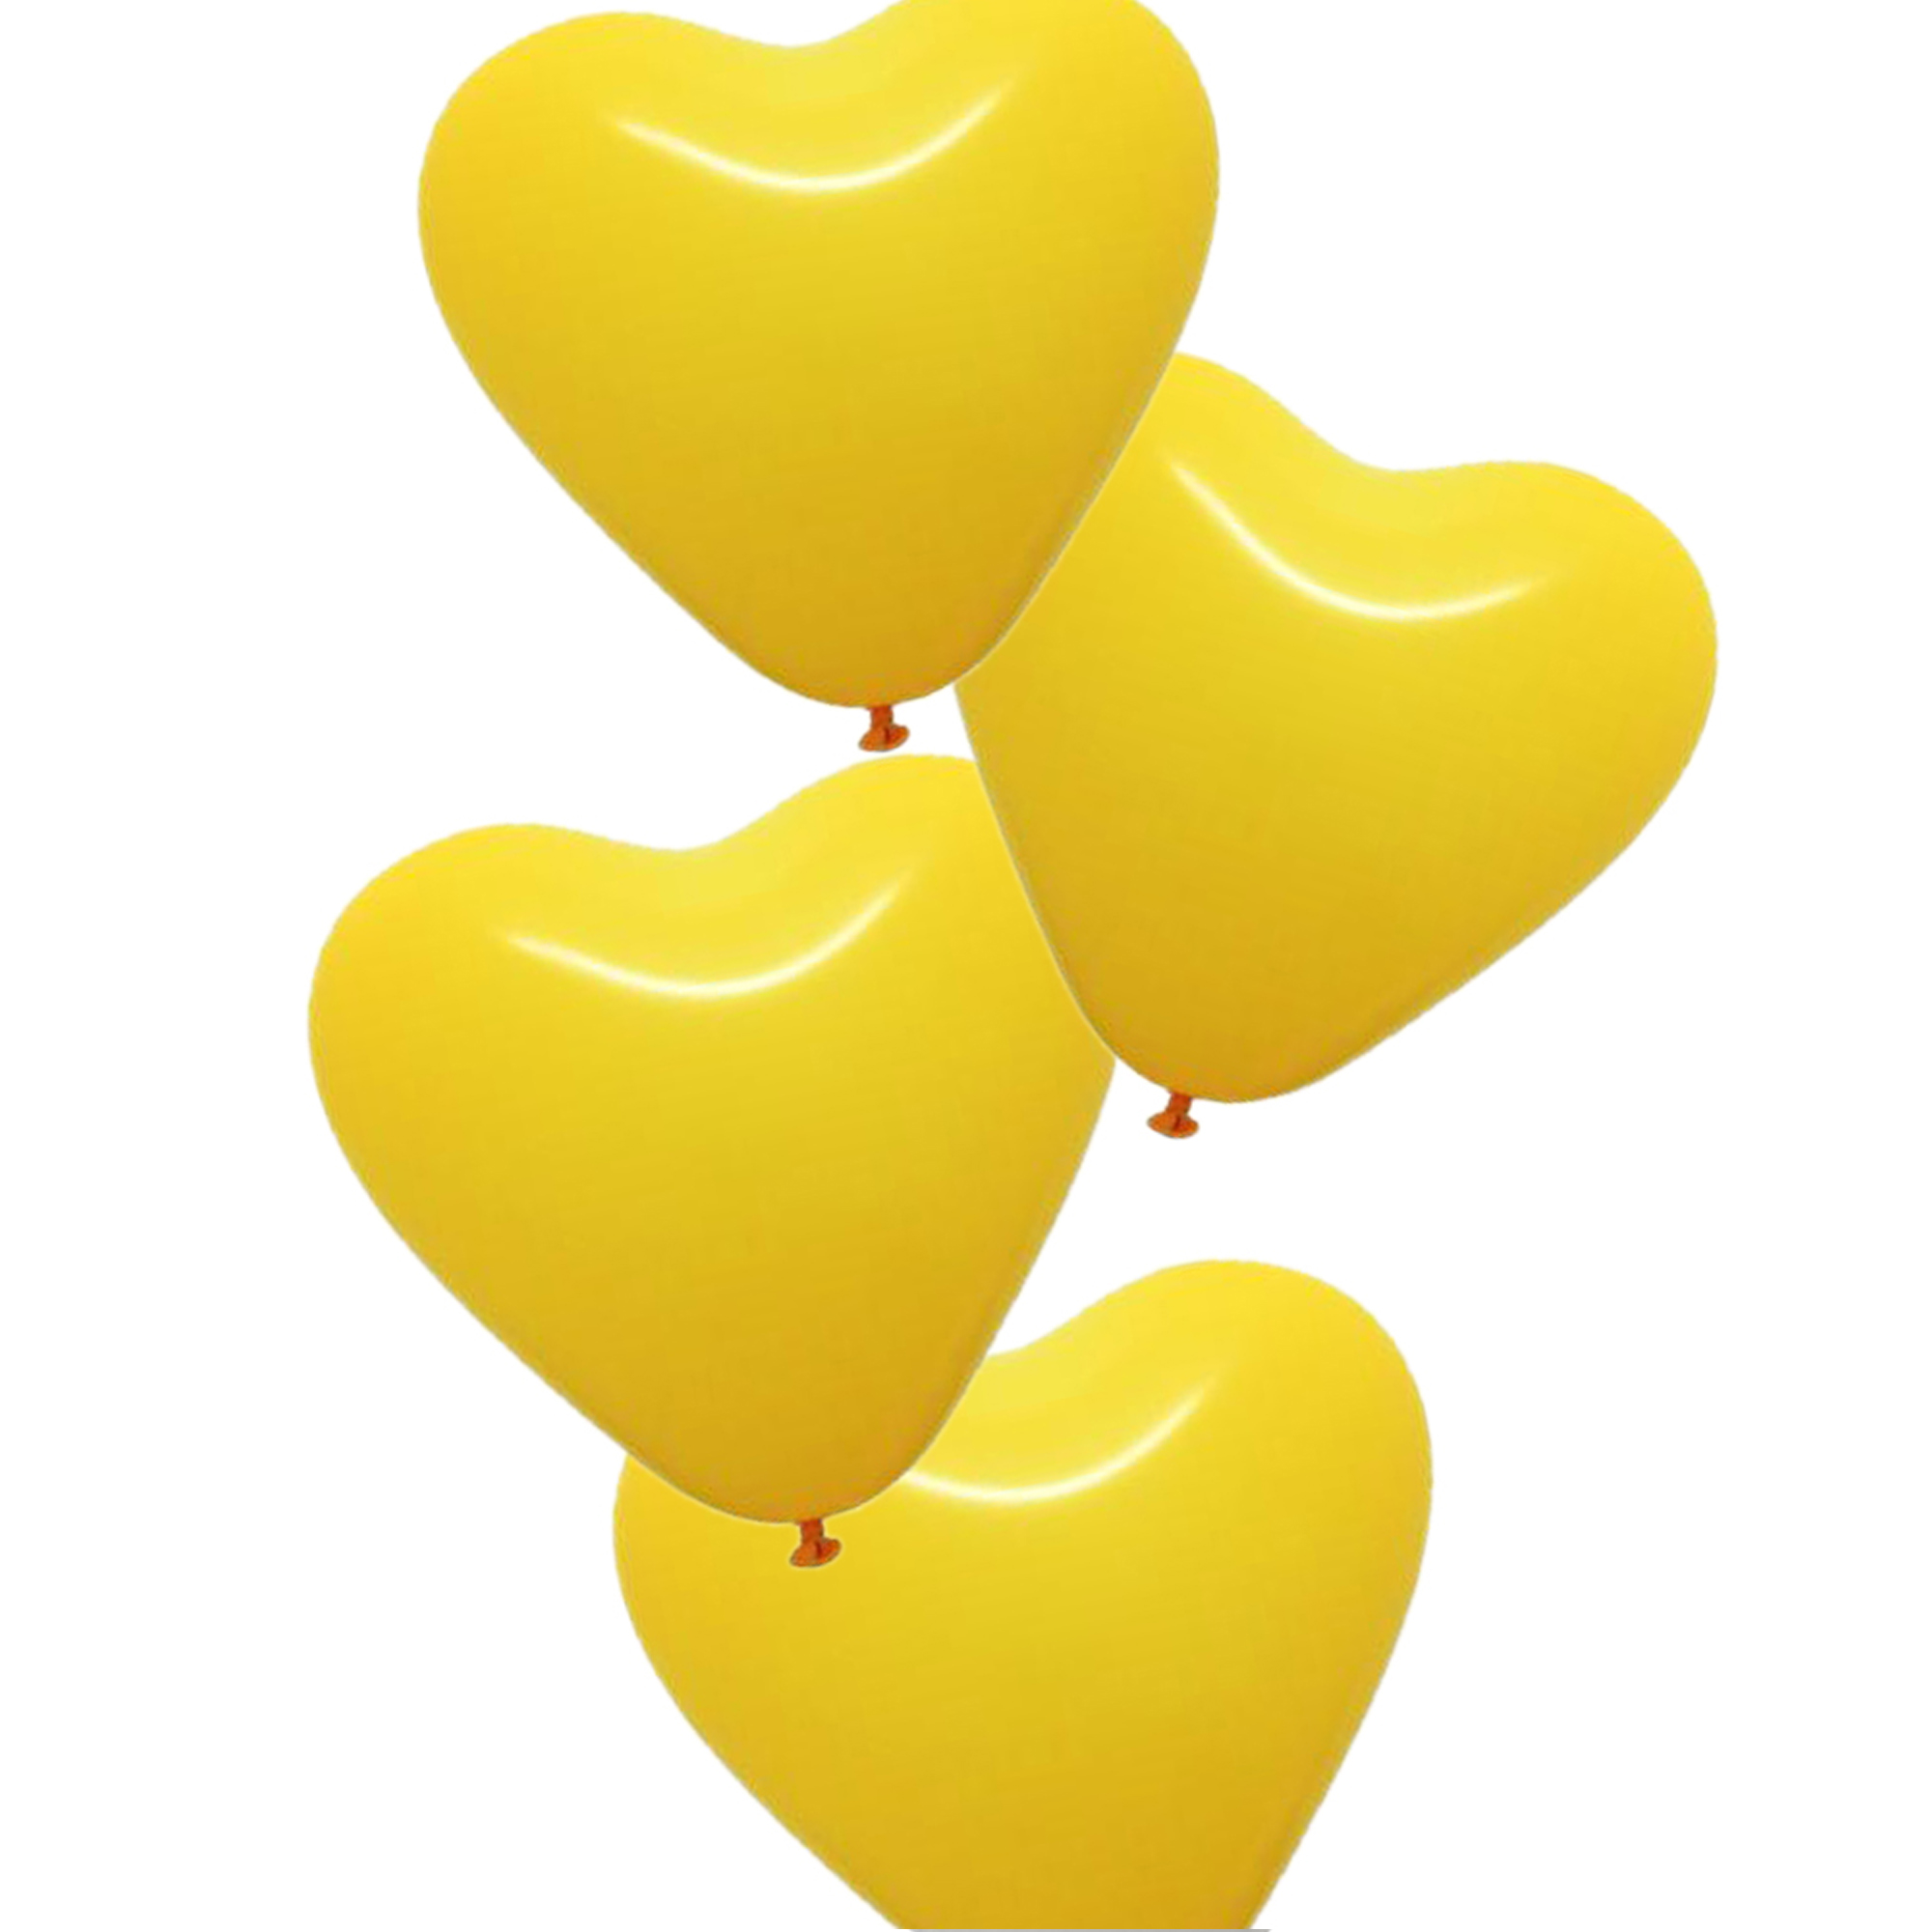 100pcs, The Elixir Party Heart Balloons 100% Latex Helium Quality Heart Shape Balloon for Party Balloons, Yellow